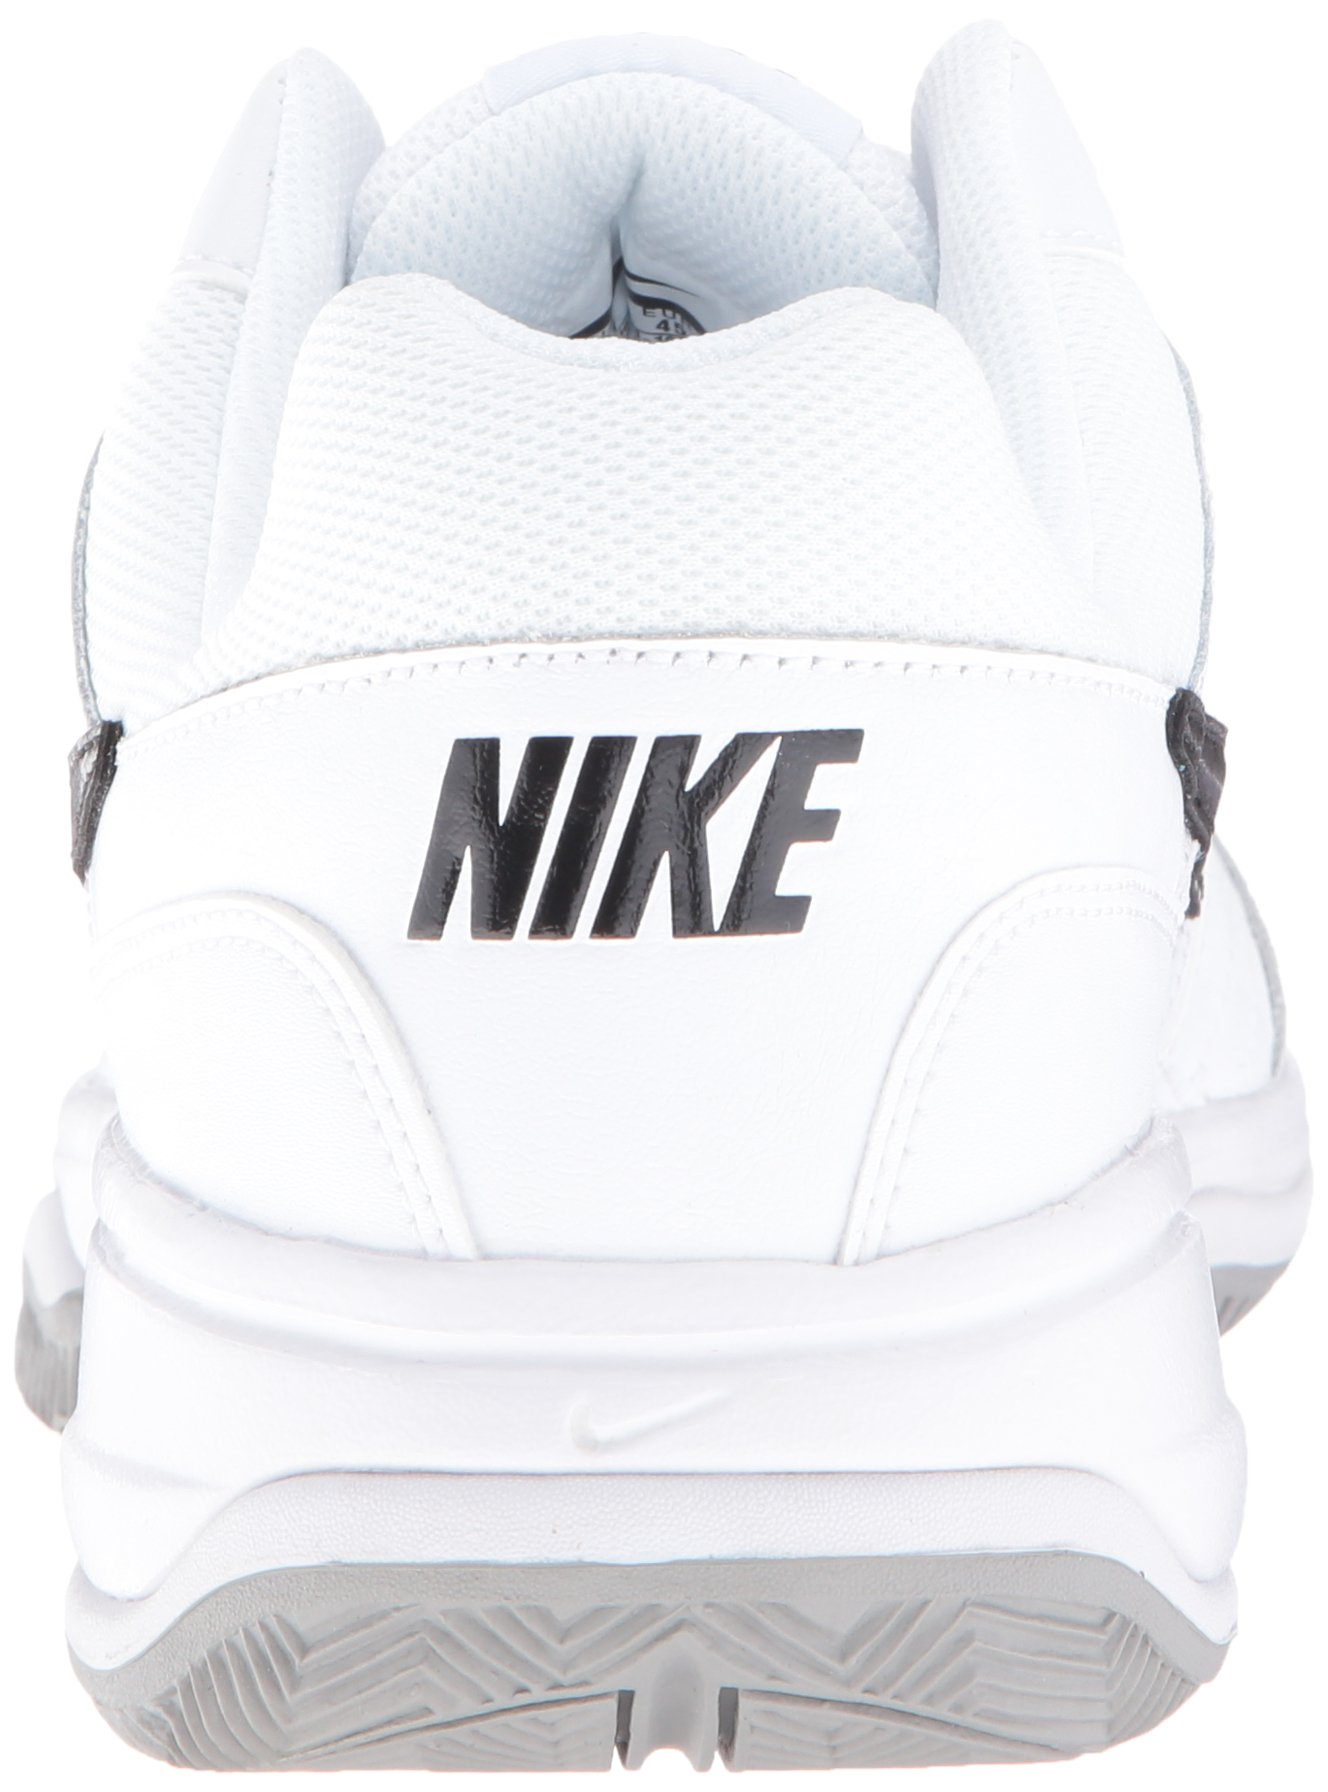 NIKE Men's Court Lite Tennis Shoe, White/Medium Grey/Black, 6.5 D(M) US by Nike (Image #2)